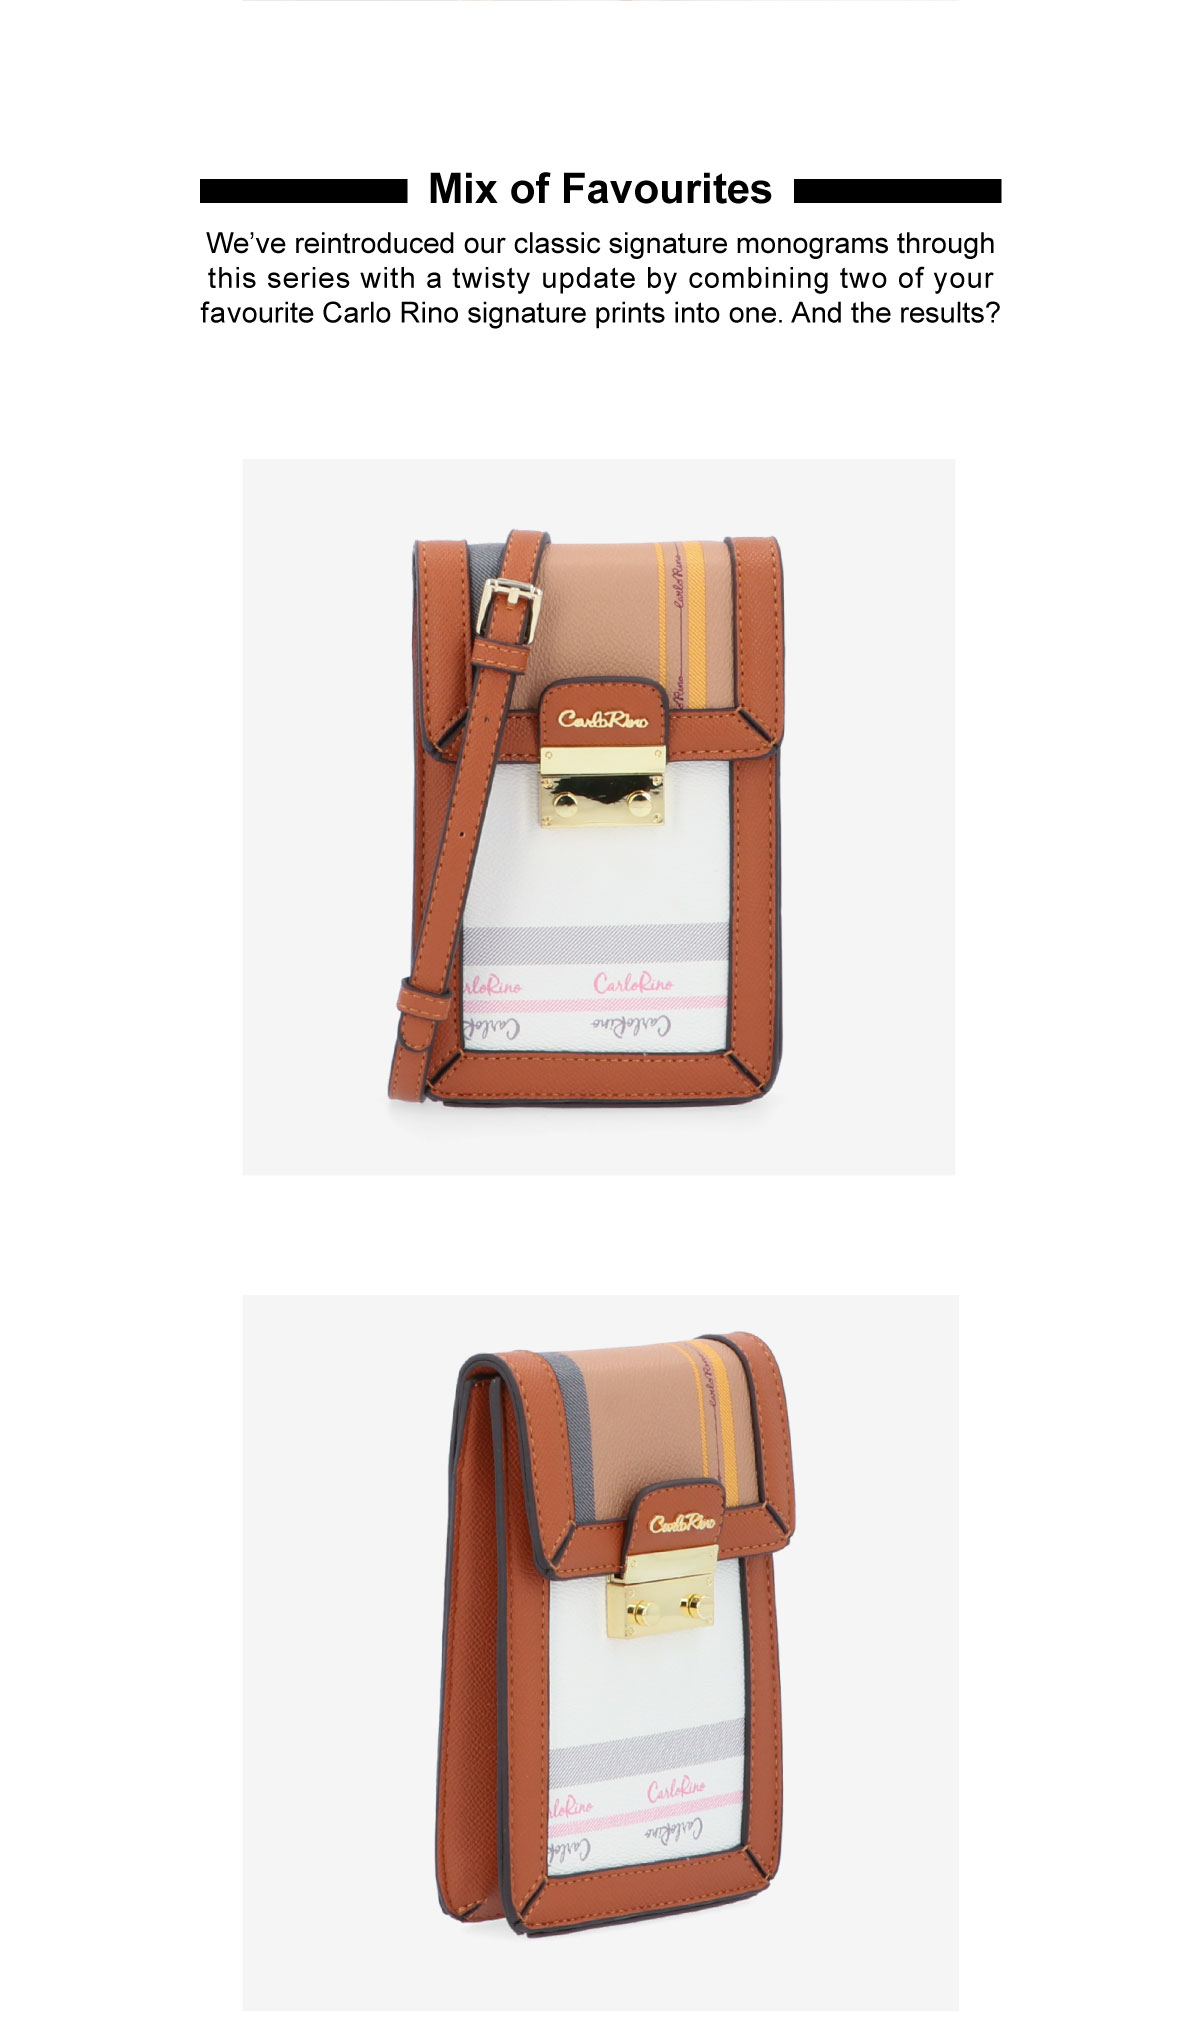 0305062J 701 05 2 1 - Mix of Favourites Vertical Cross Body